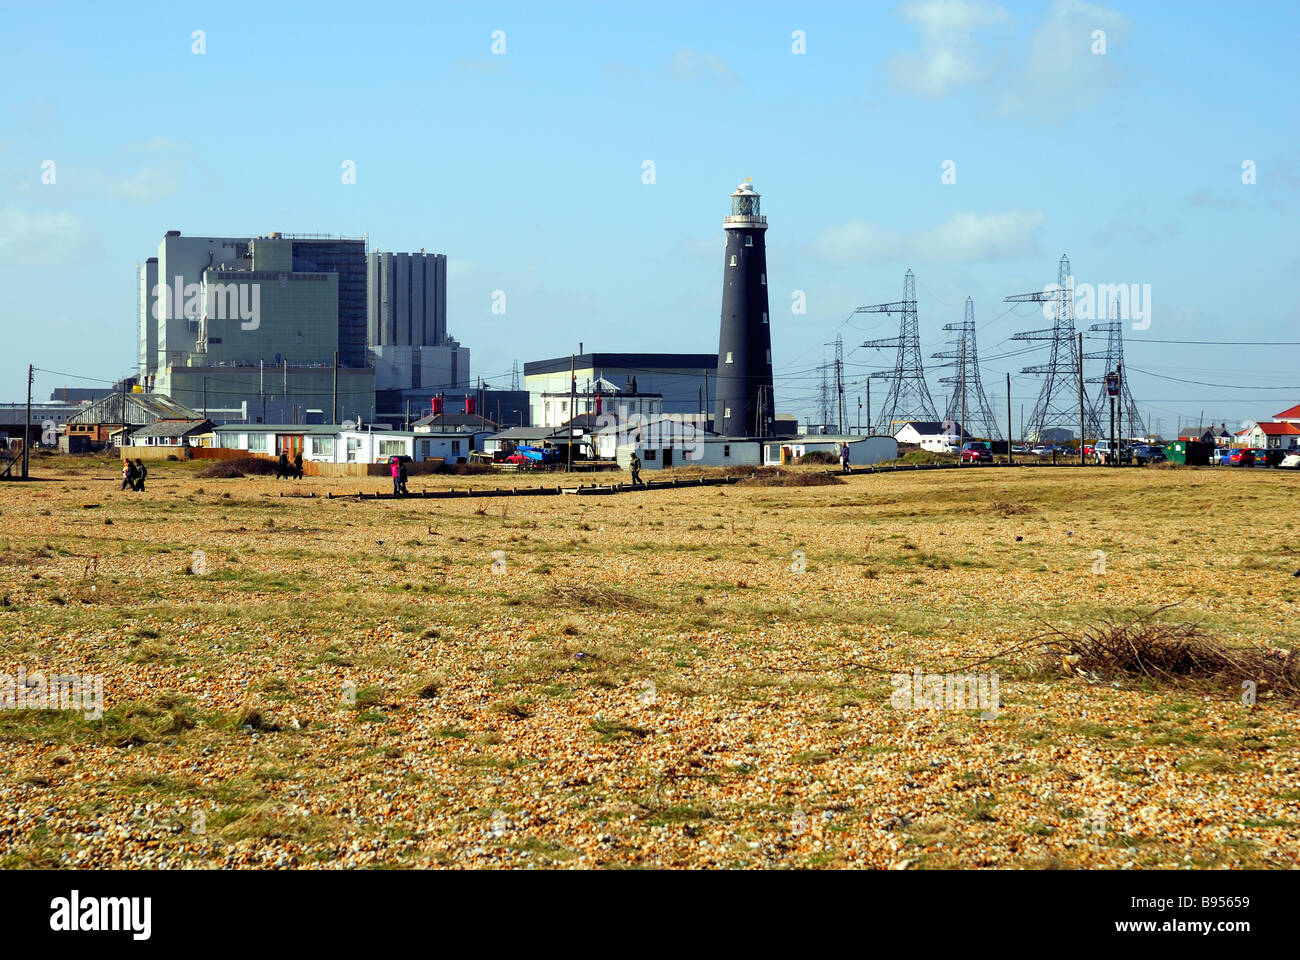 Lighthouse and atomic power station at Dungeness - Stock Image